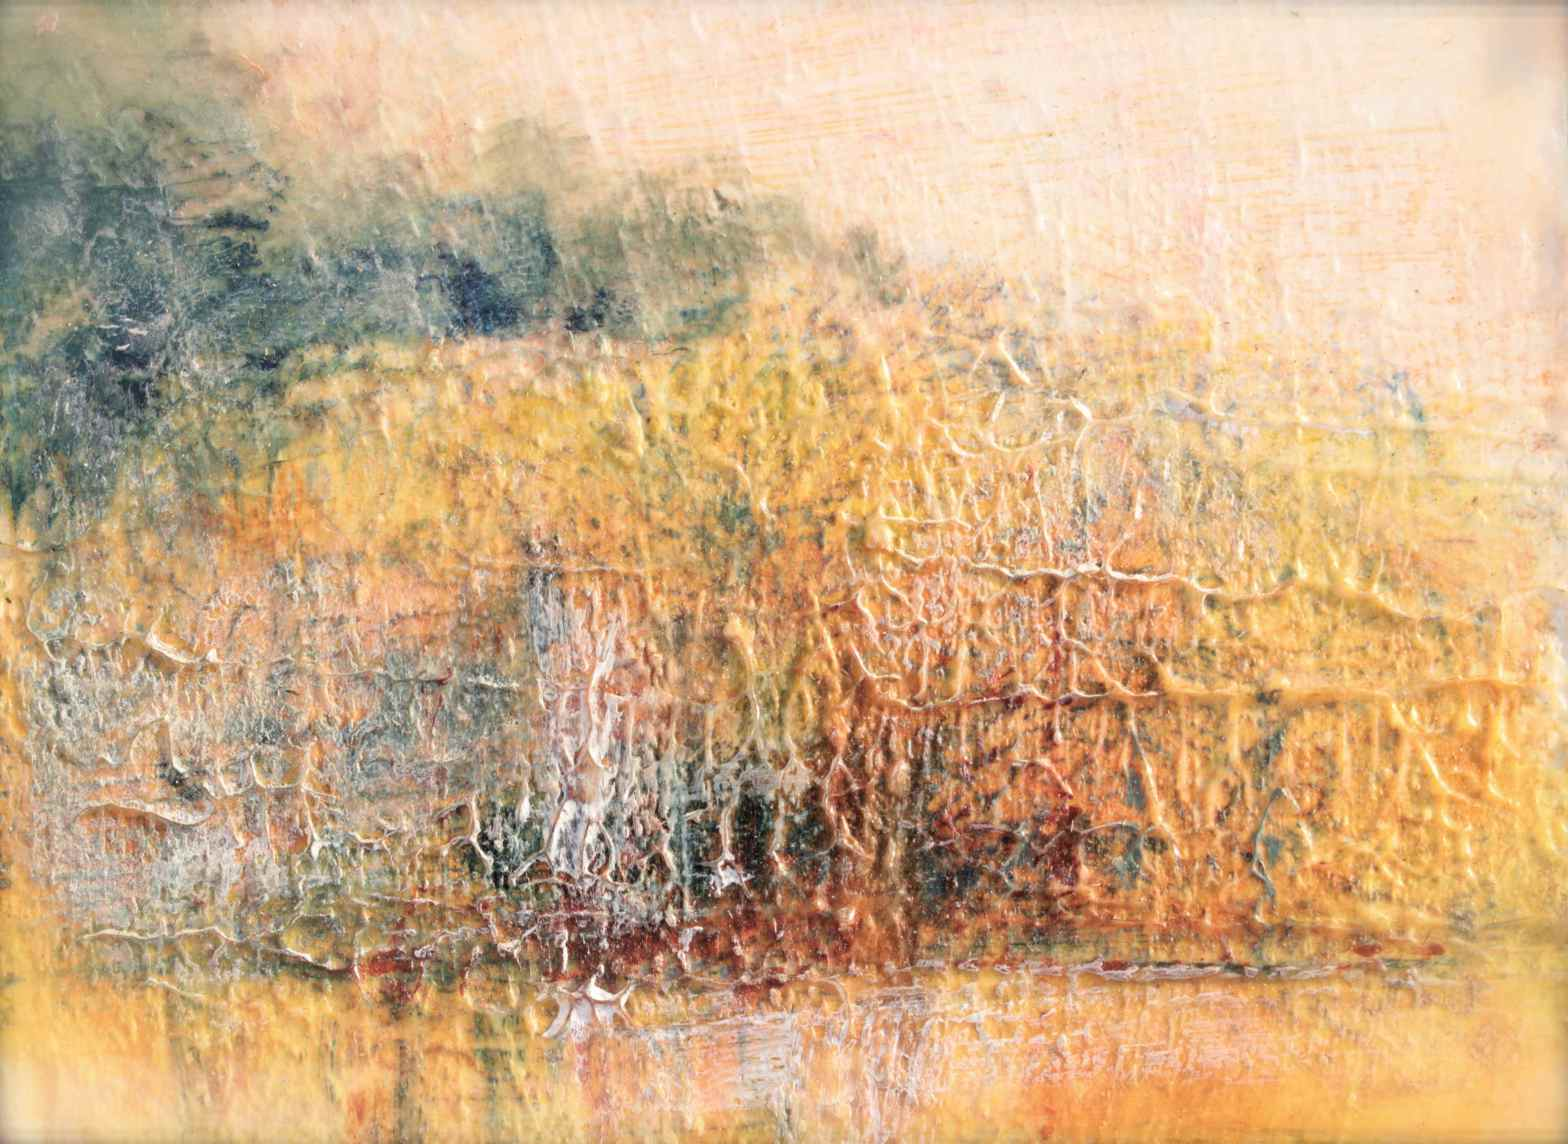 Autumn Landscape prussian blue pb27, debiriley.com